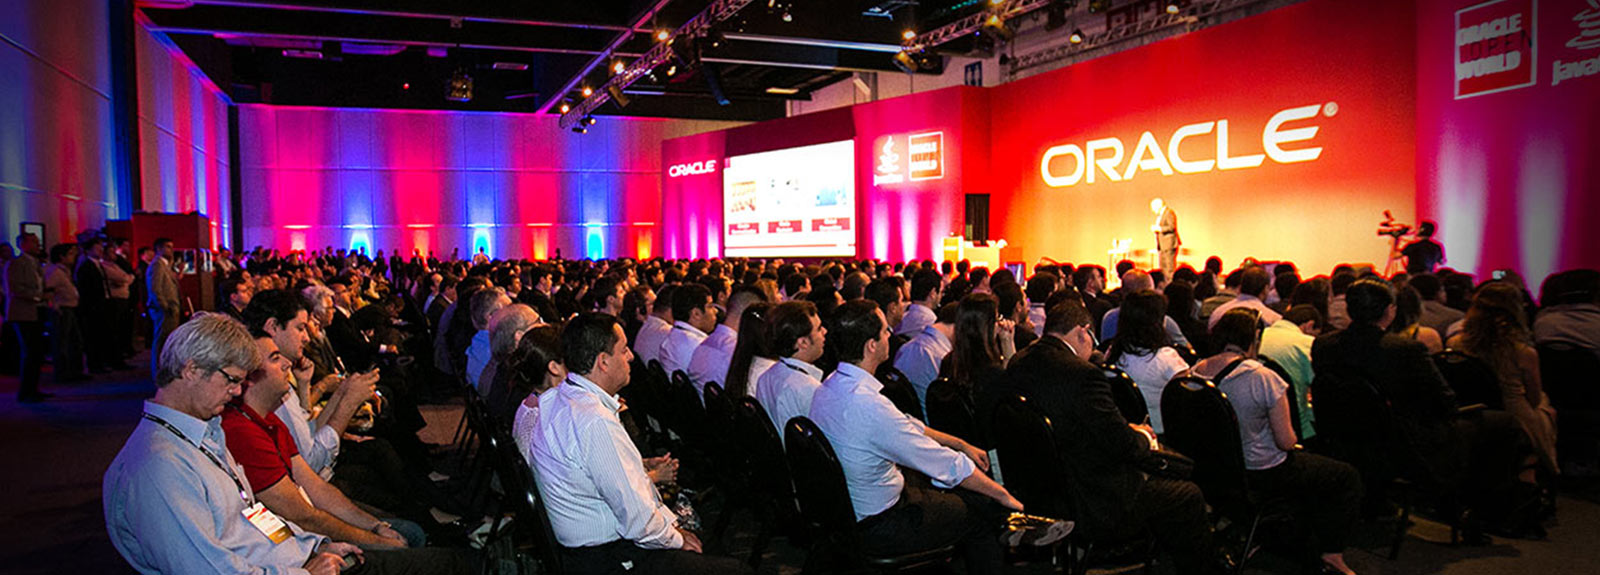 Oracle OpenWorld 2015: Finally a real Vision and Mission. A pleasant surprise